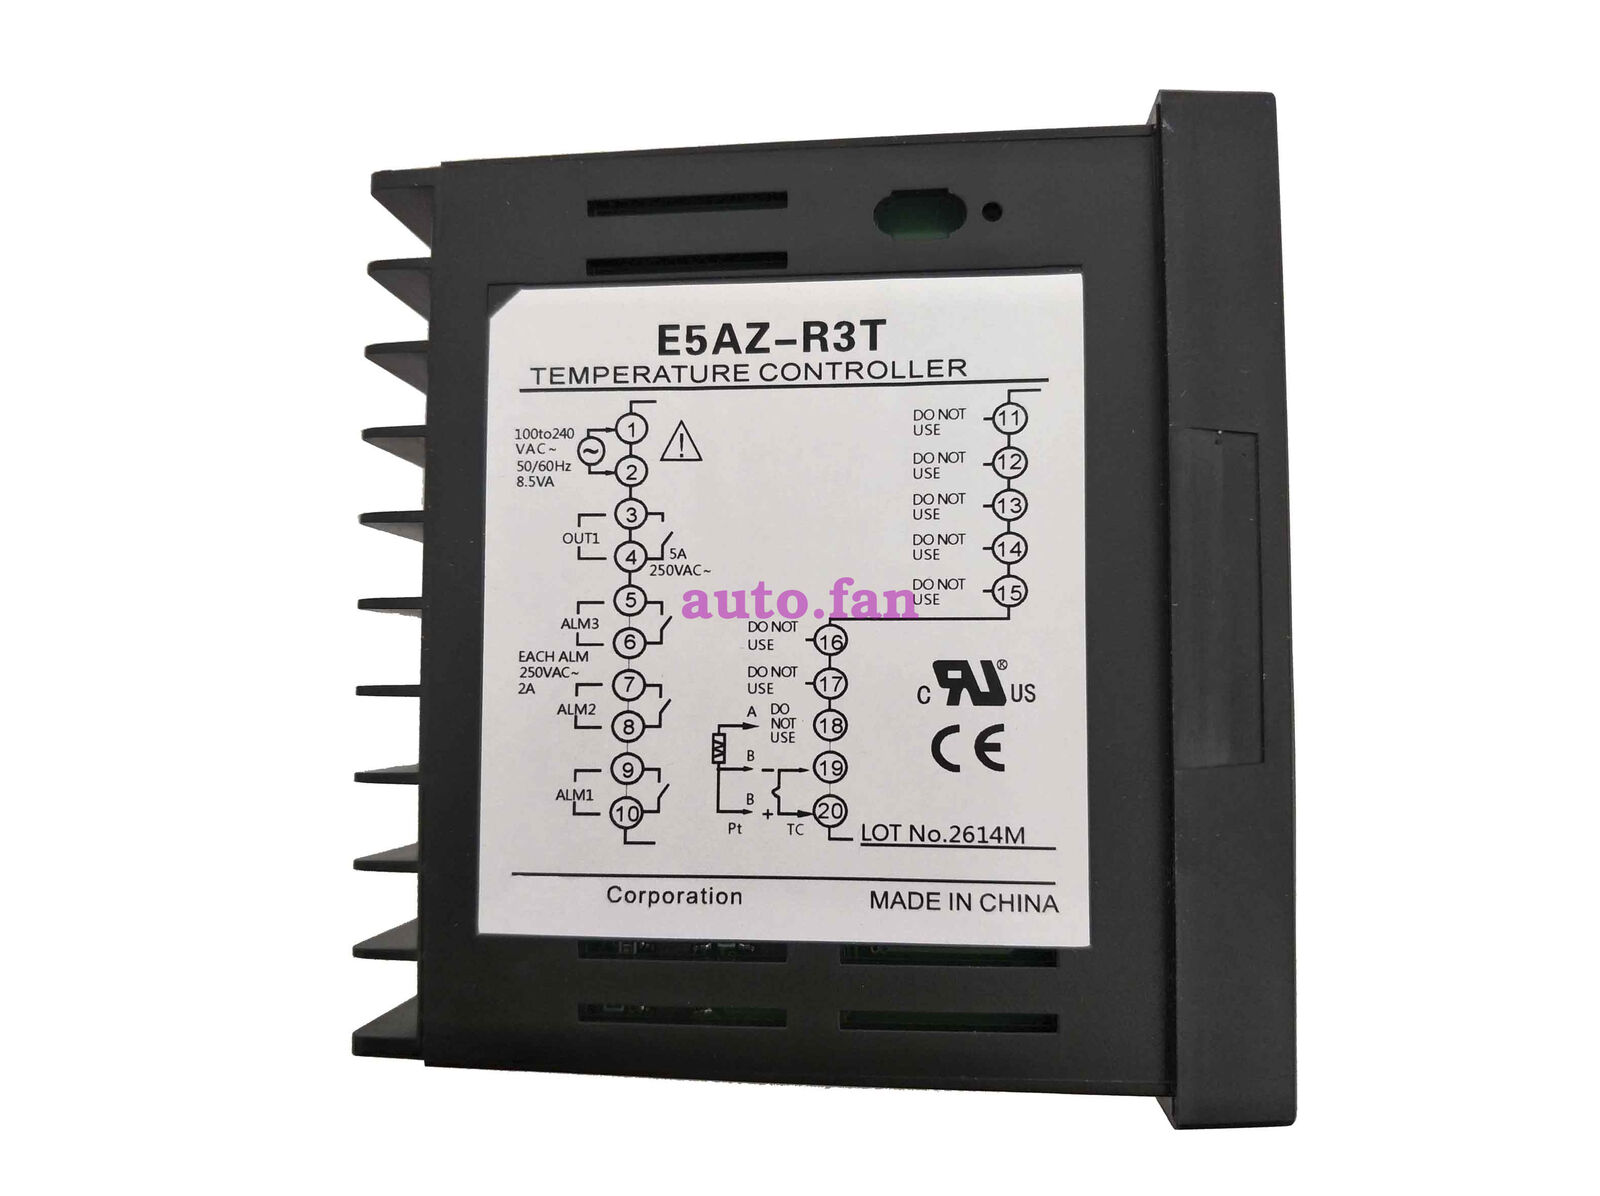 For Compatible E5AZ-R3T Thermostat